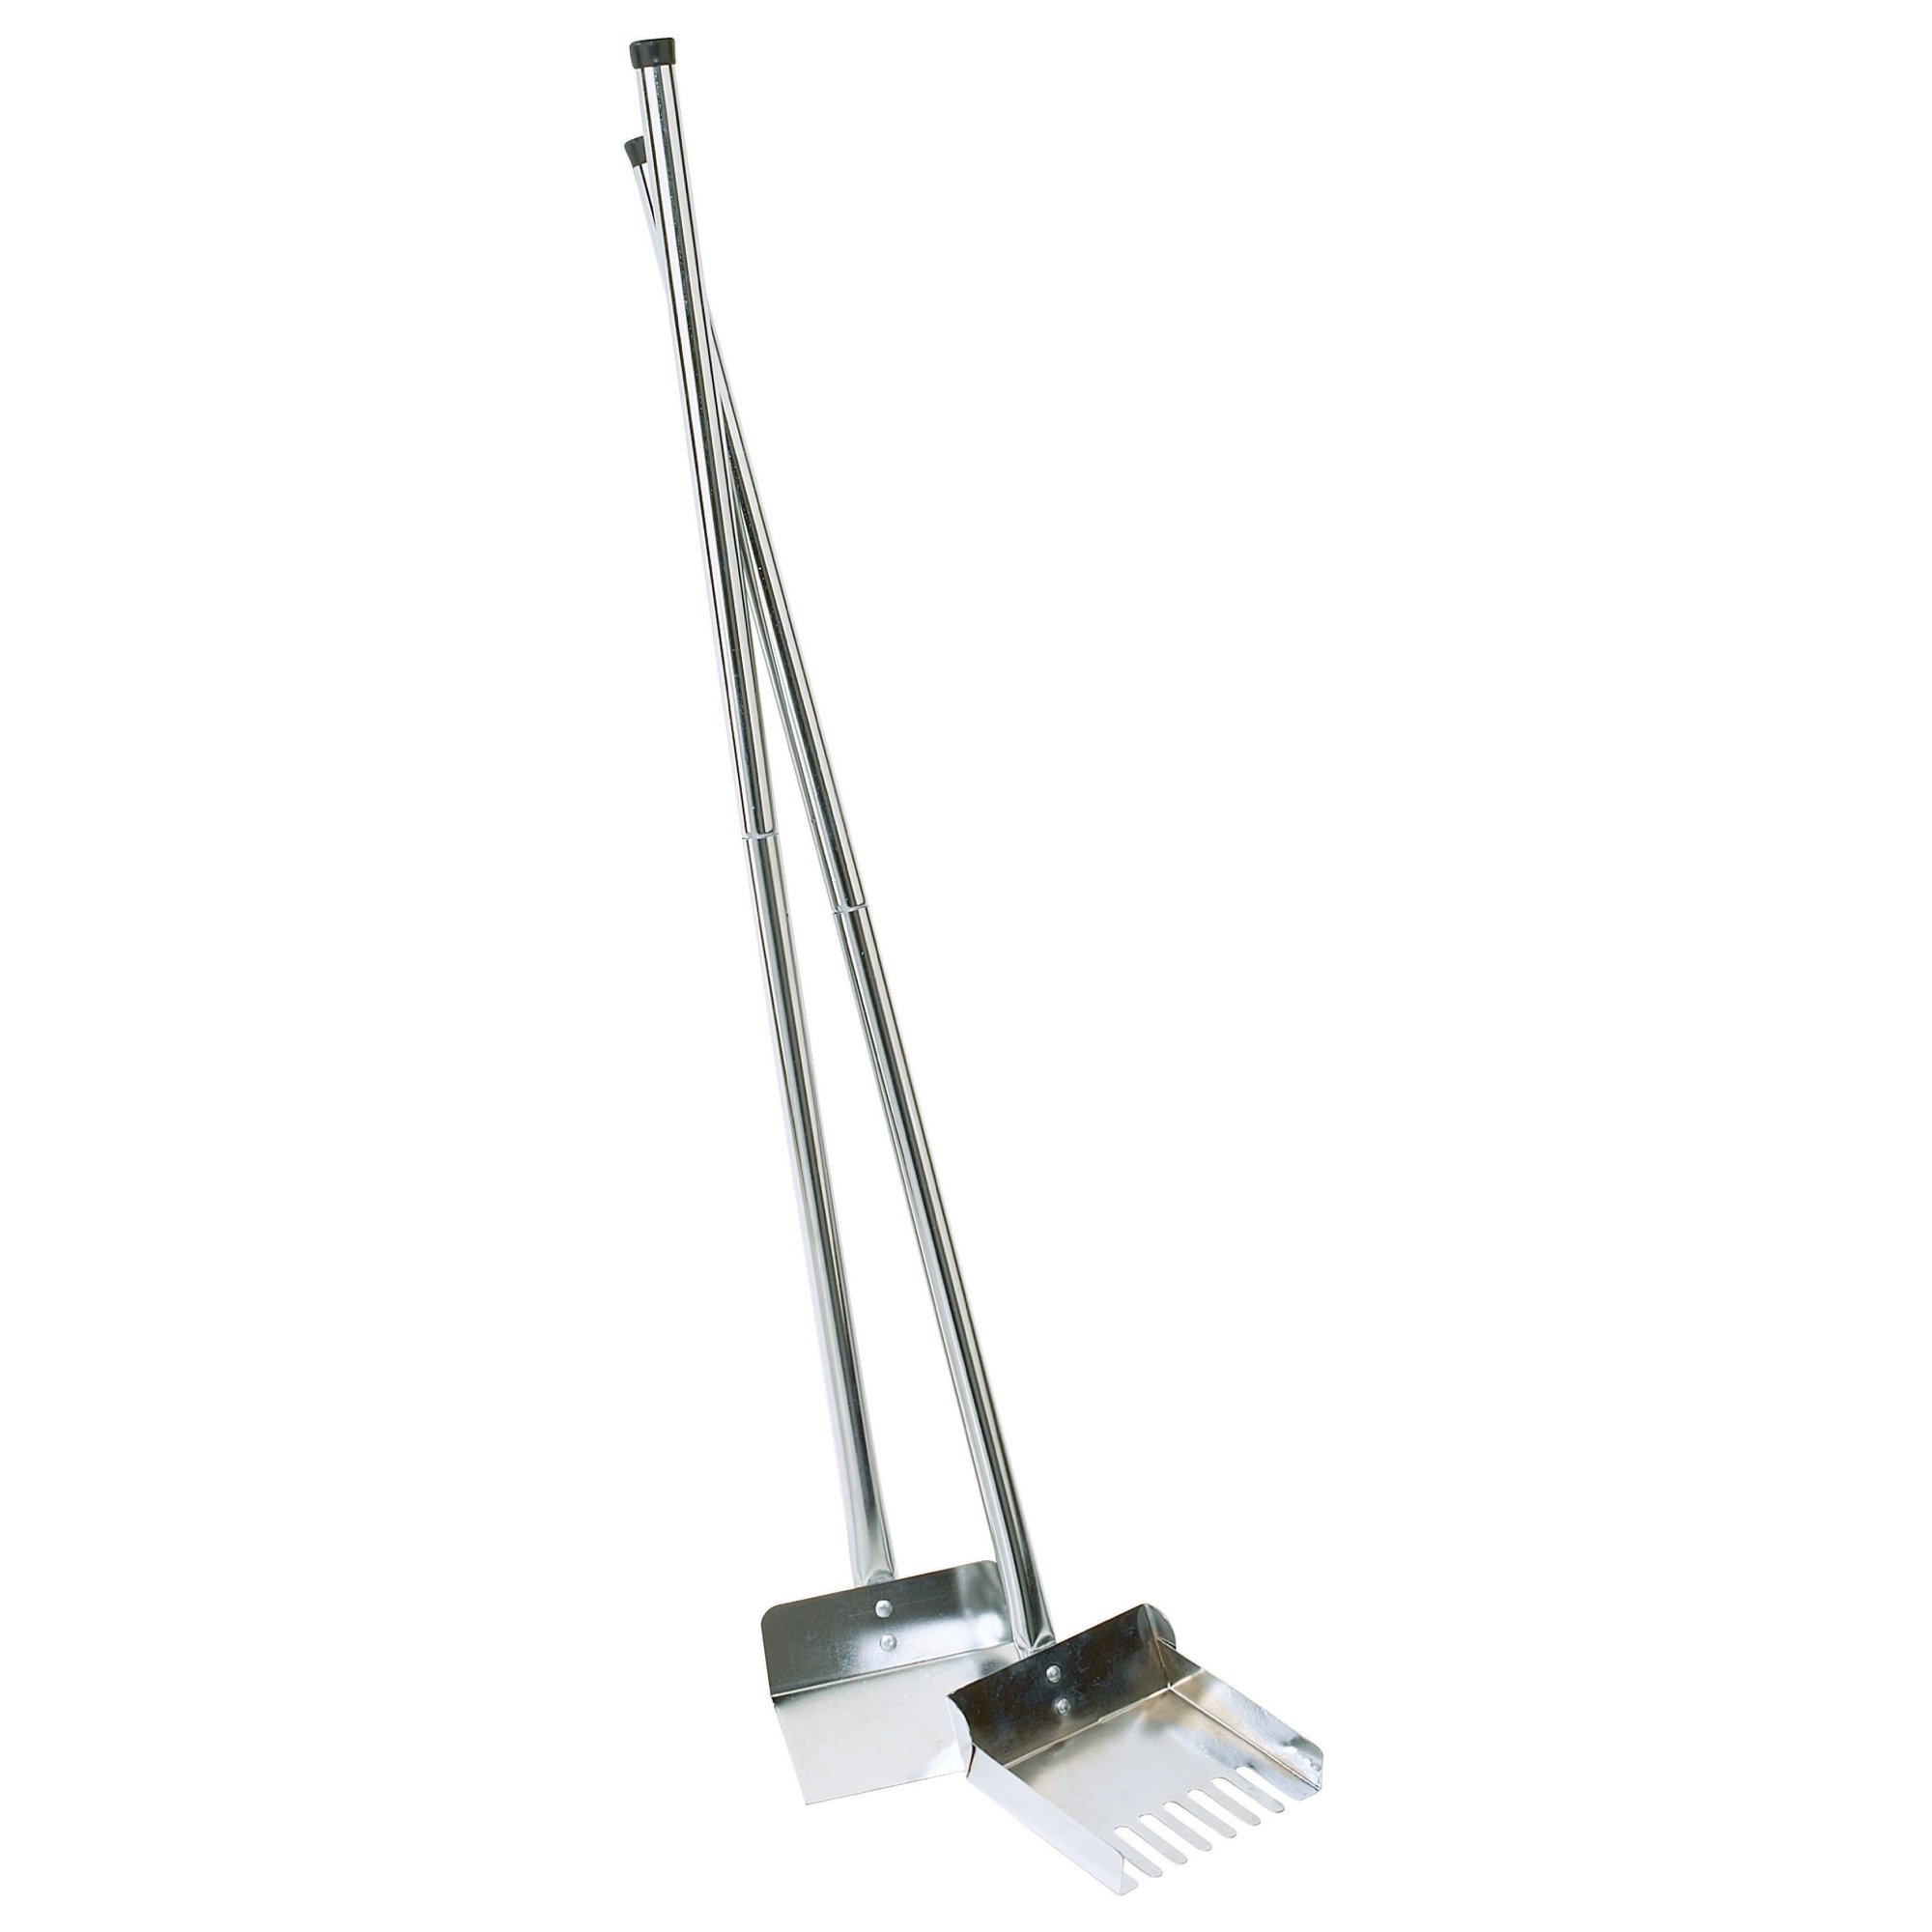 "Clean Go Sanitary Dog Poop Scooper, 36"" Length – Uses Chrome-Plated Steel & Rake-Style Tines to Scoop Dog Waste on Grass"